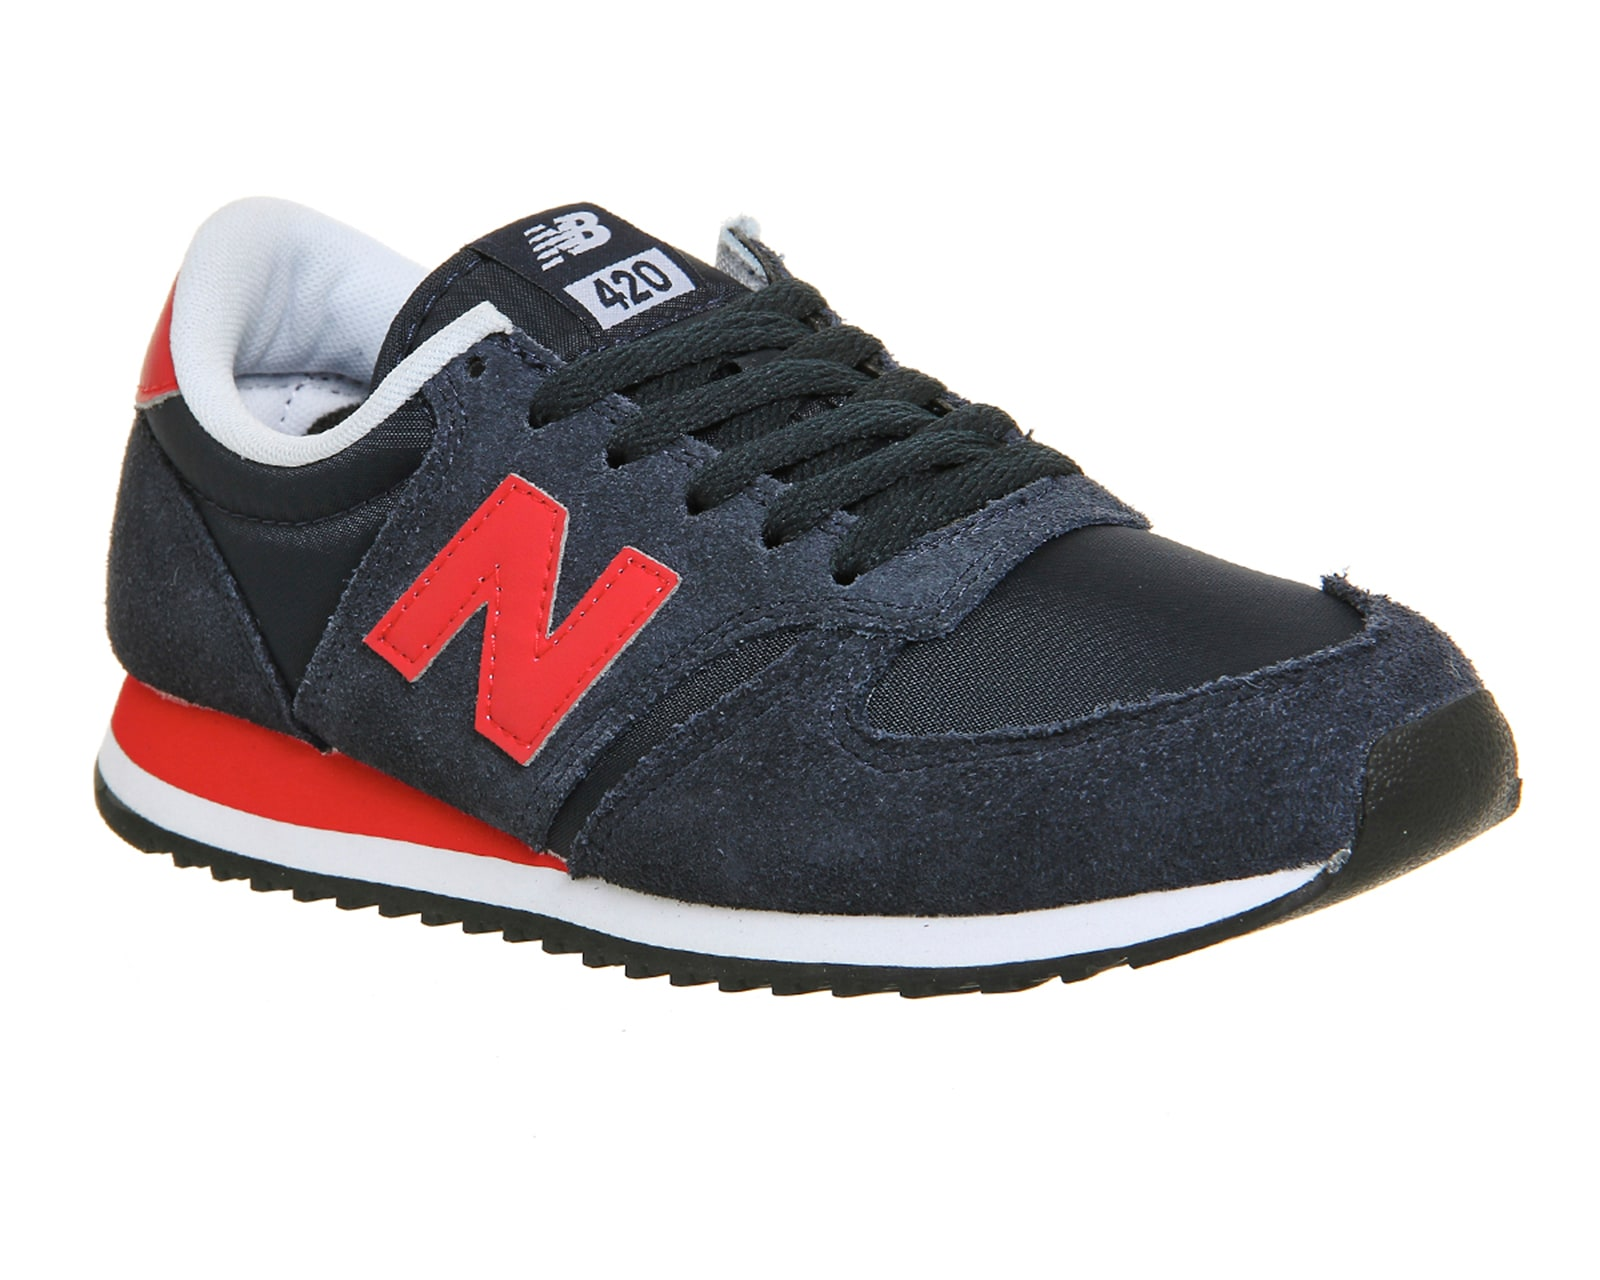 mens new balance 420 navy red trainers shoes ebay. Black Bedroom Furniture Sets. Home Design Ideas